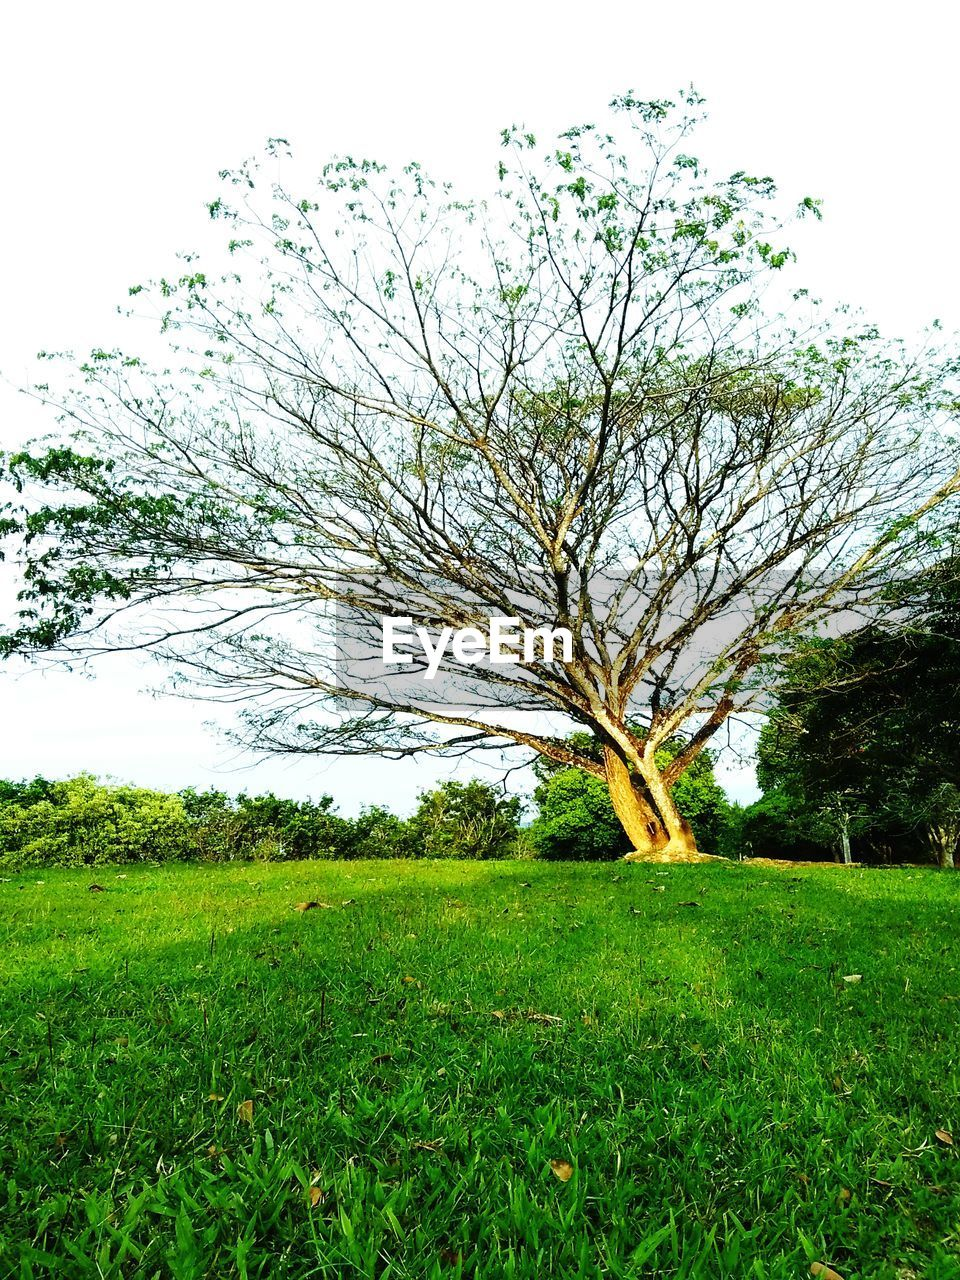 tree, plant, grass, sky, field, land, green color, beauty in nature, tranquility, growth, landscape, scenics - nature, environment, tranquil scene, nature, no people, day, non-urban scene, outdoors, branch, isolated